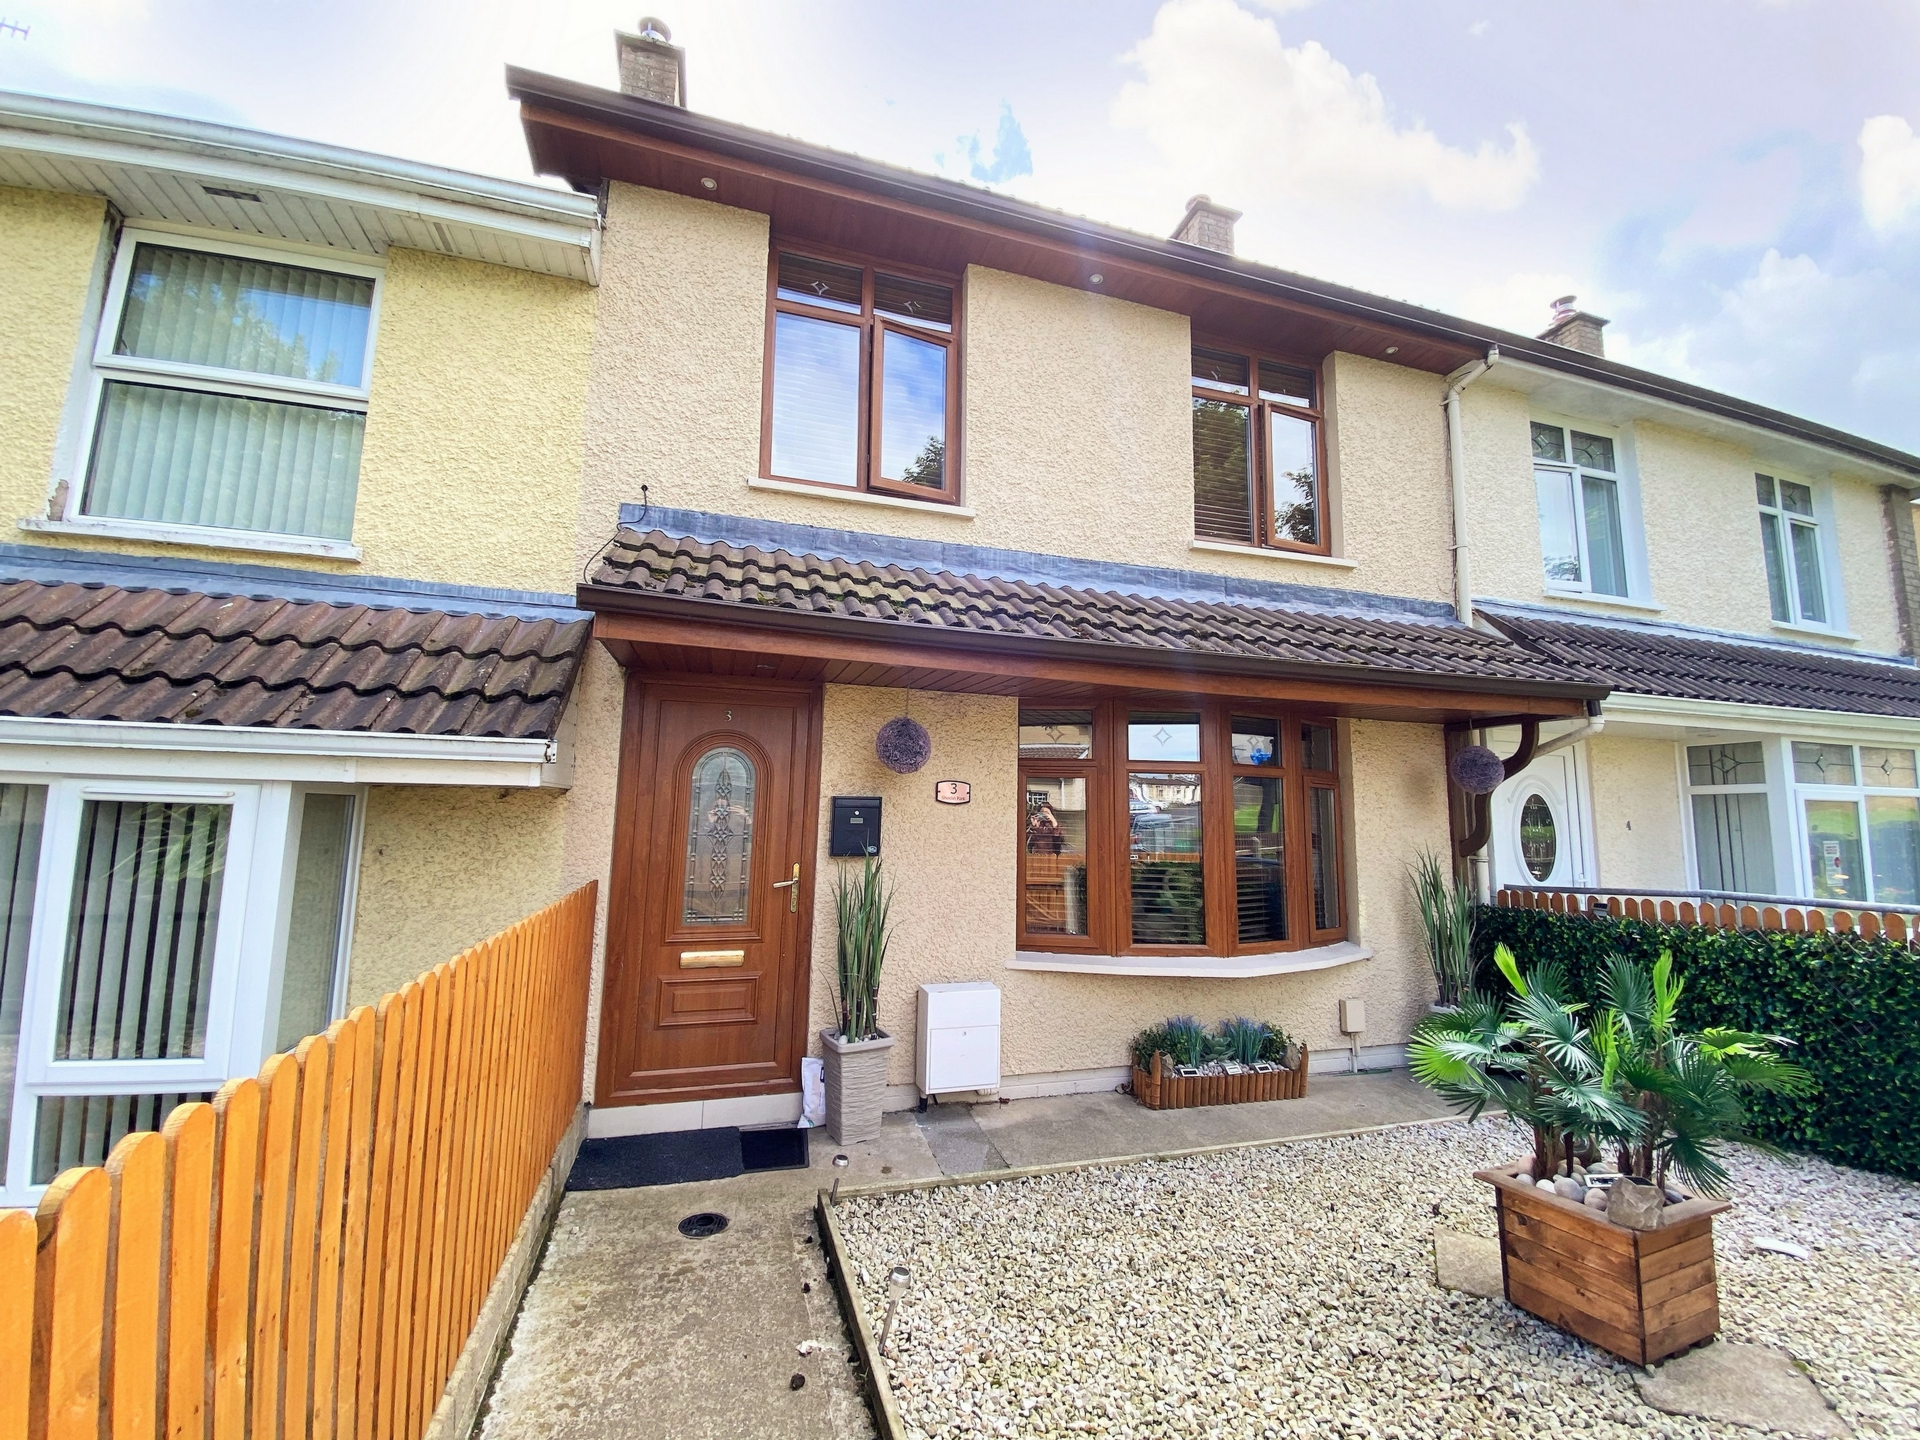 Photo 2, Sheelin Park, Ballymagroarty, Cityside, BT48